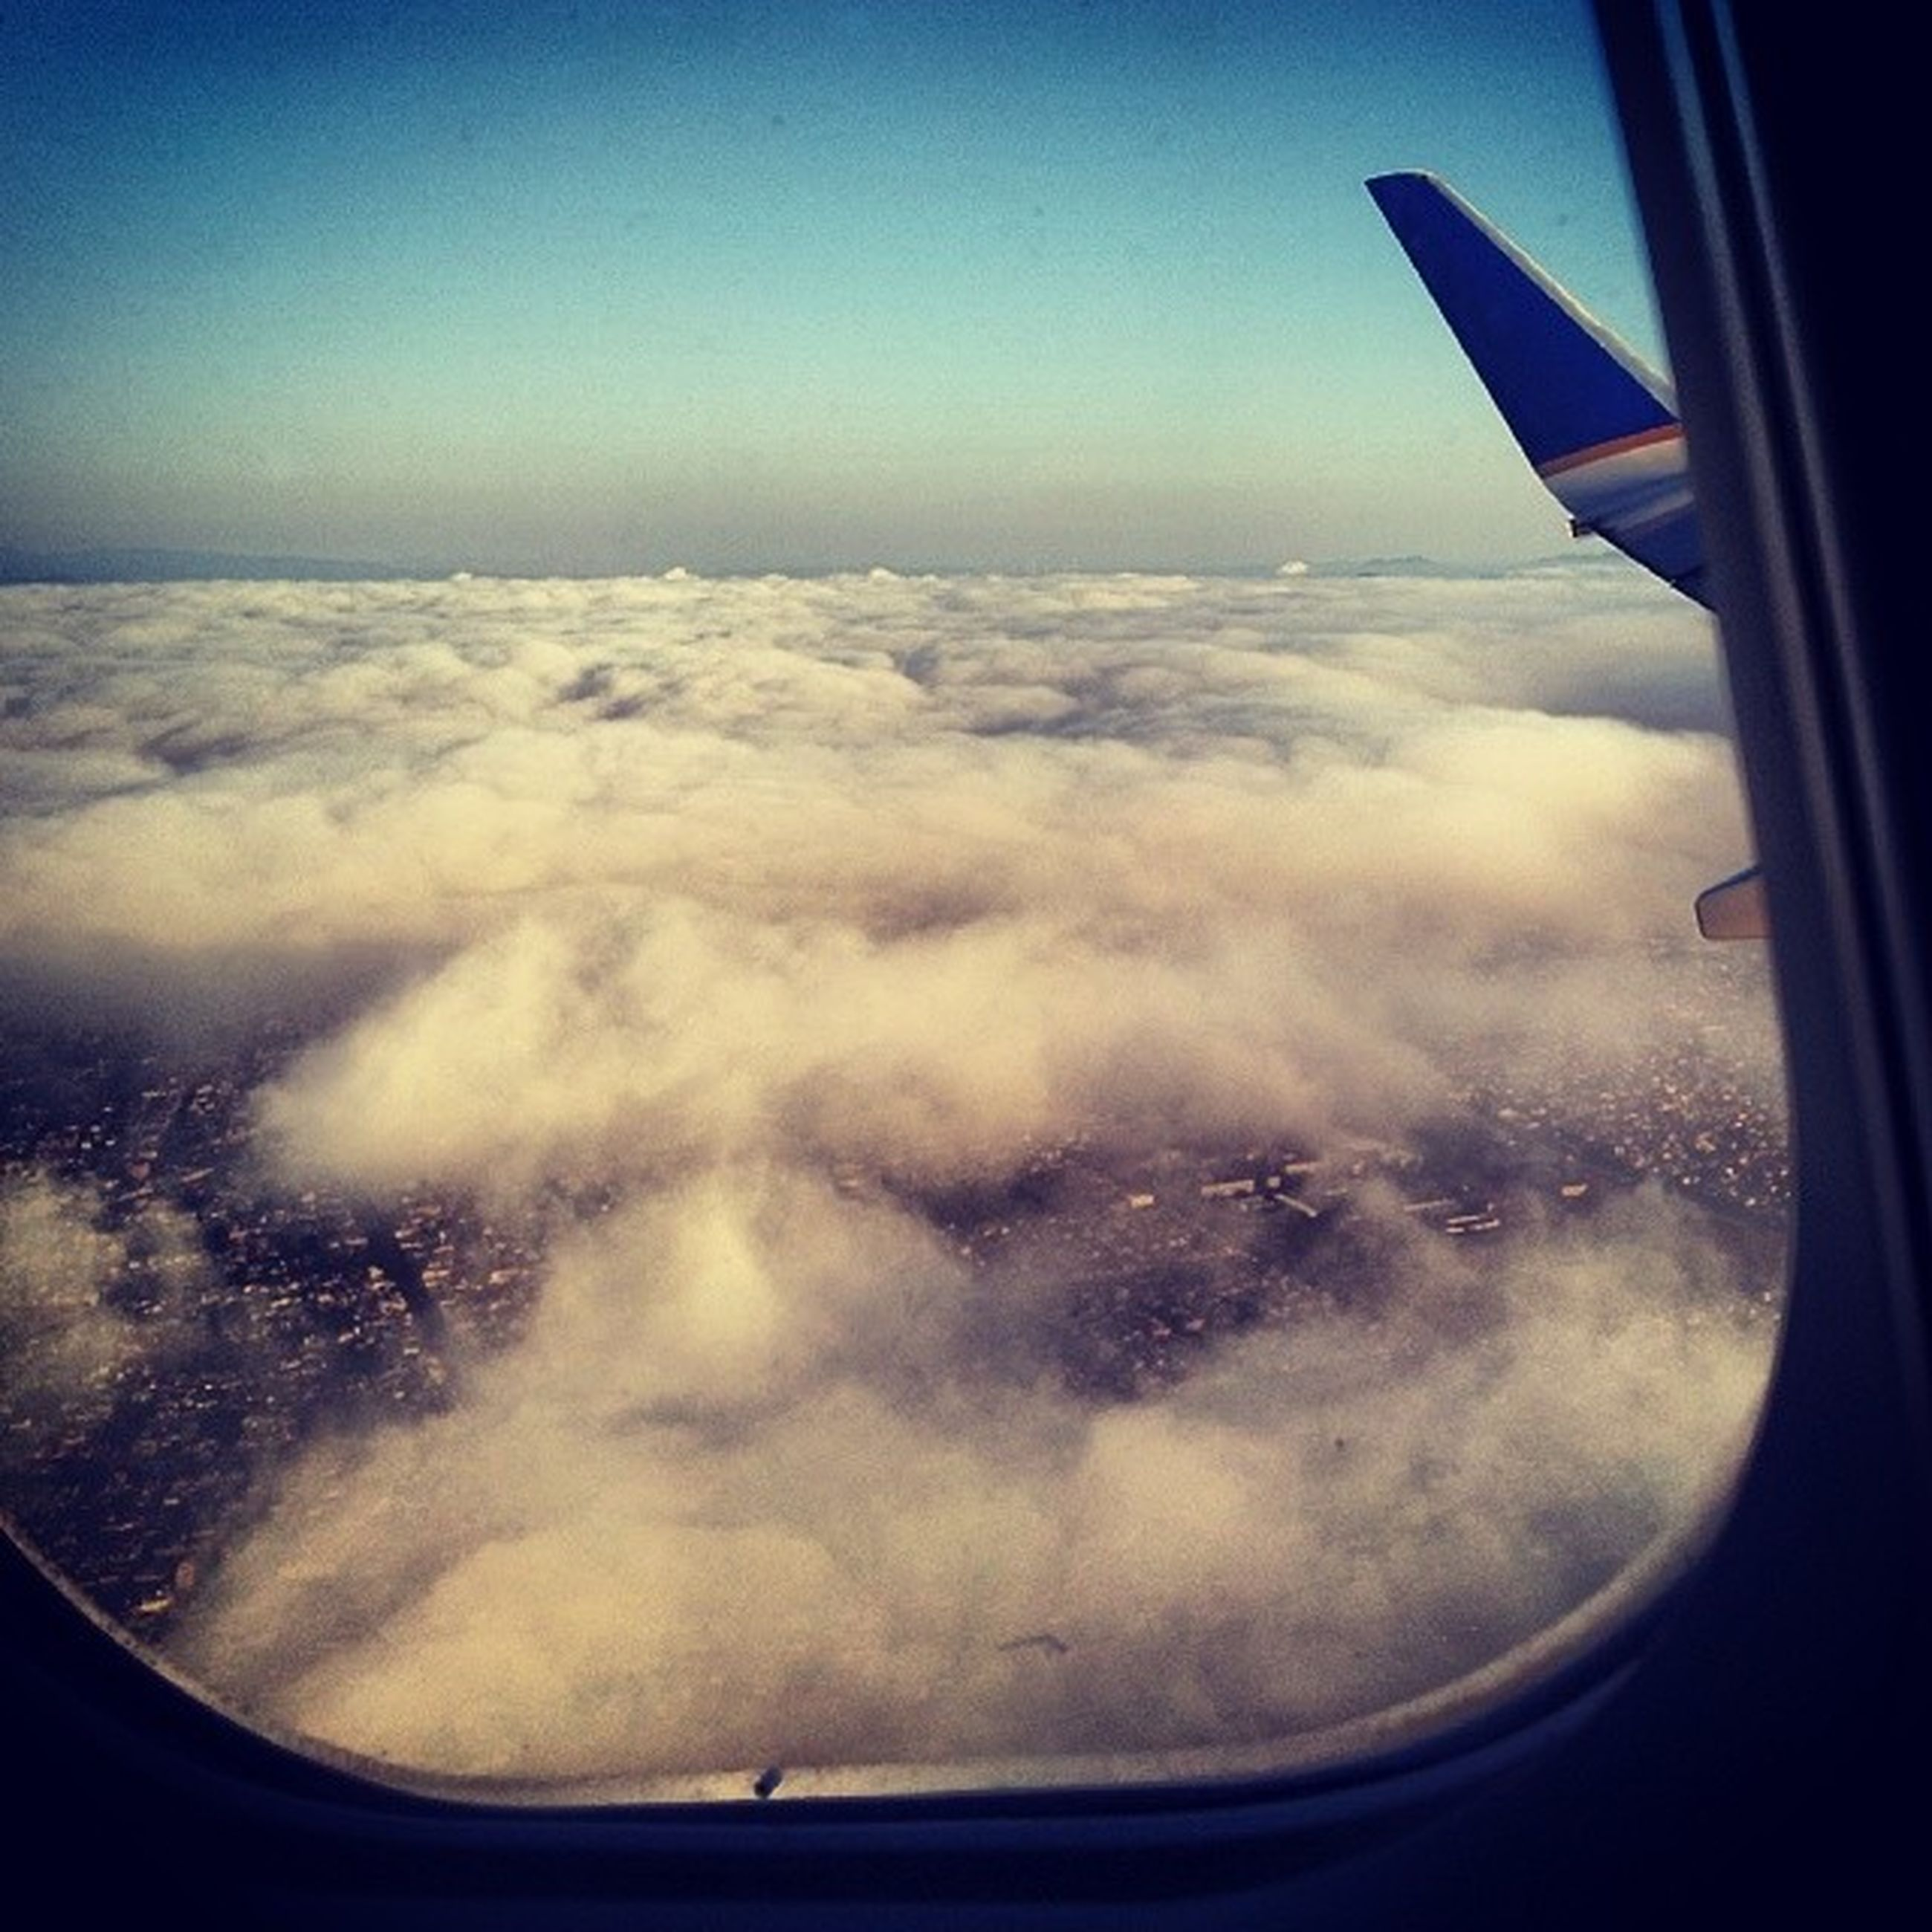 transportation, mode of transport, airplane, air vehicle, vehicle interior, window, aircraft wing, flying, part of, glass - material, transparent, travel, cropped, on the move, aerial view, journey, sky, vehicle part, mid-air, landscape